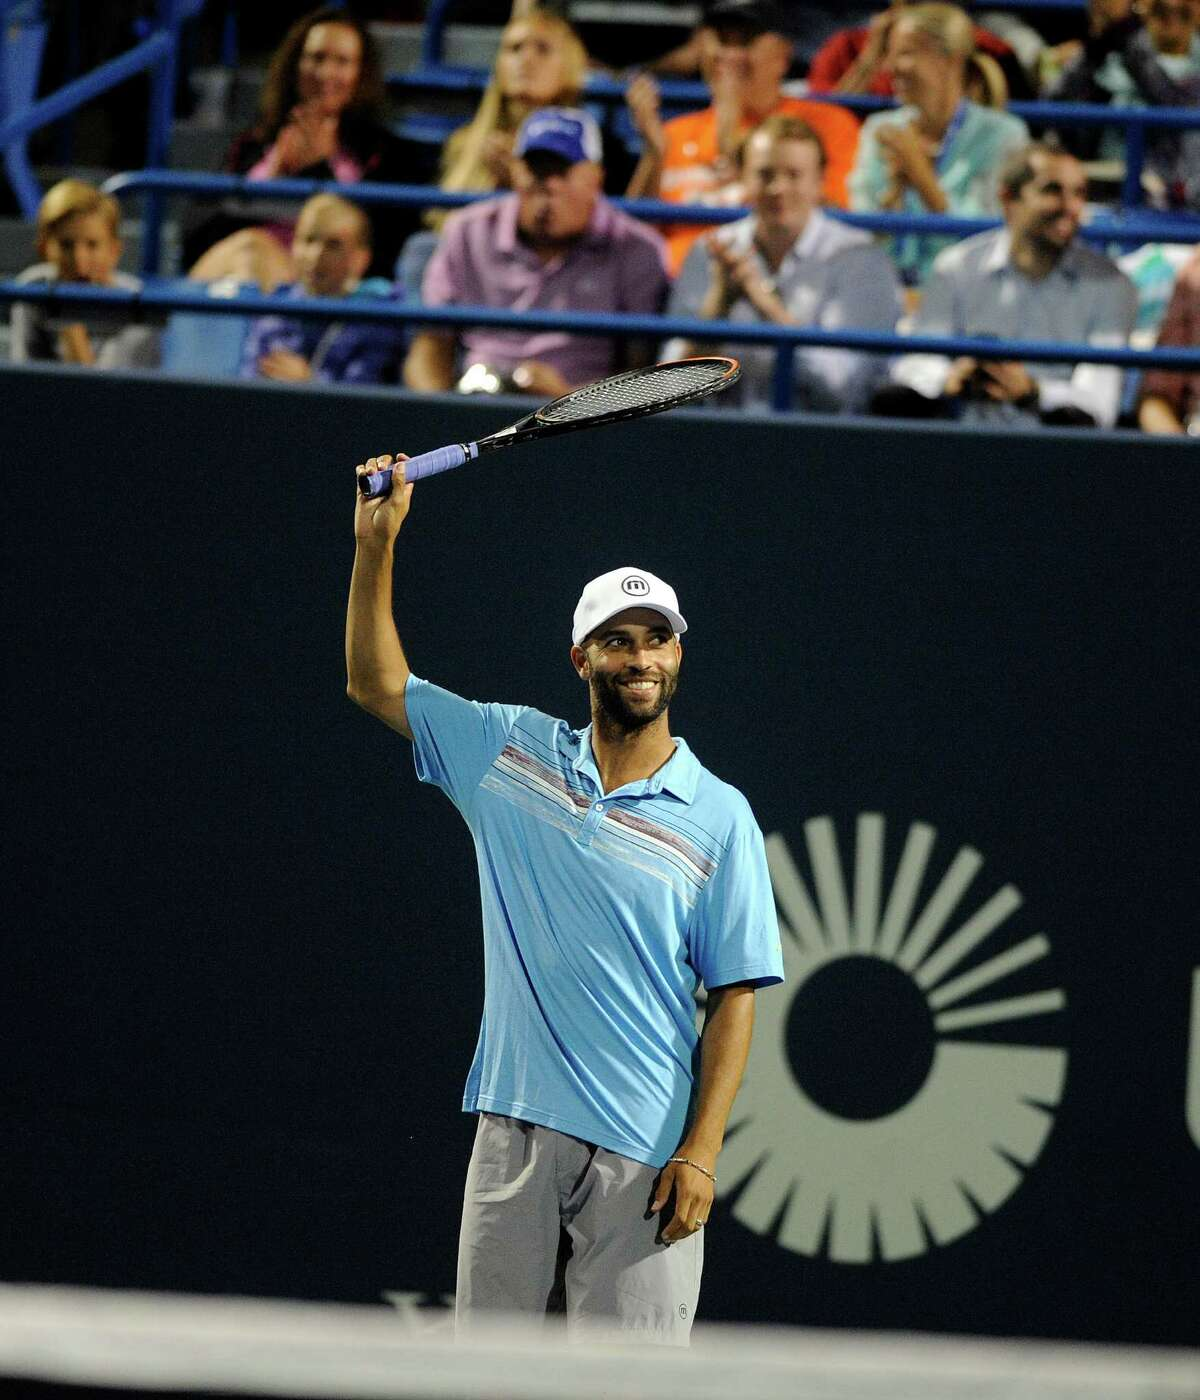 In this Thursday, Aug. 27, 2015, photo, James Blake gestures during an exhibition match at the Connecticut Open tennis tournament in New Haven, Conn. Former tennis star James Blake said Thursday, Sept. 10, 2015, he wants an apology after a case of mistaken identity led police to handcuff him and take him to the ground, but New York's police commissioner said Blake hasn't returned his calls. (AP Photo/Fred Beckham)